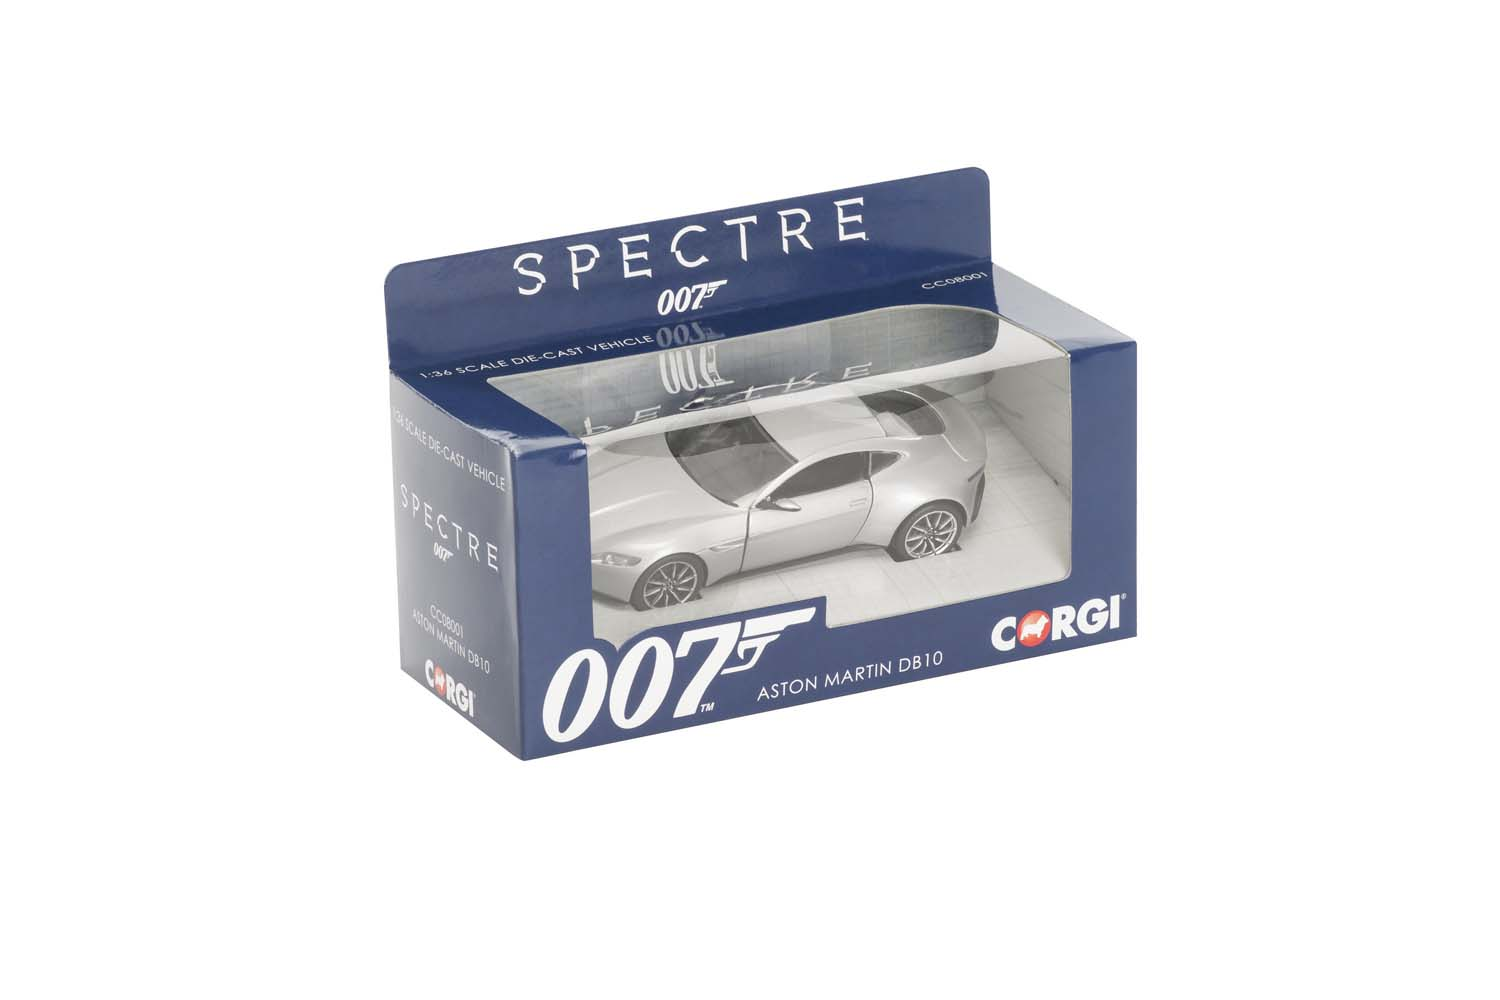 007 James Bond - Corgi Aston Martin db10 Spectre die cast